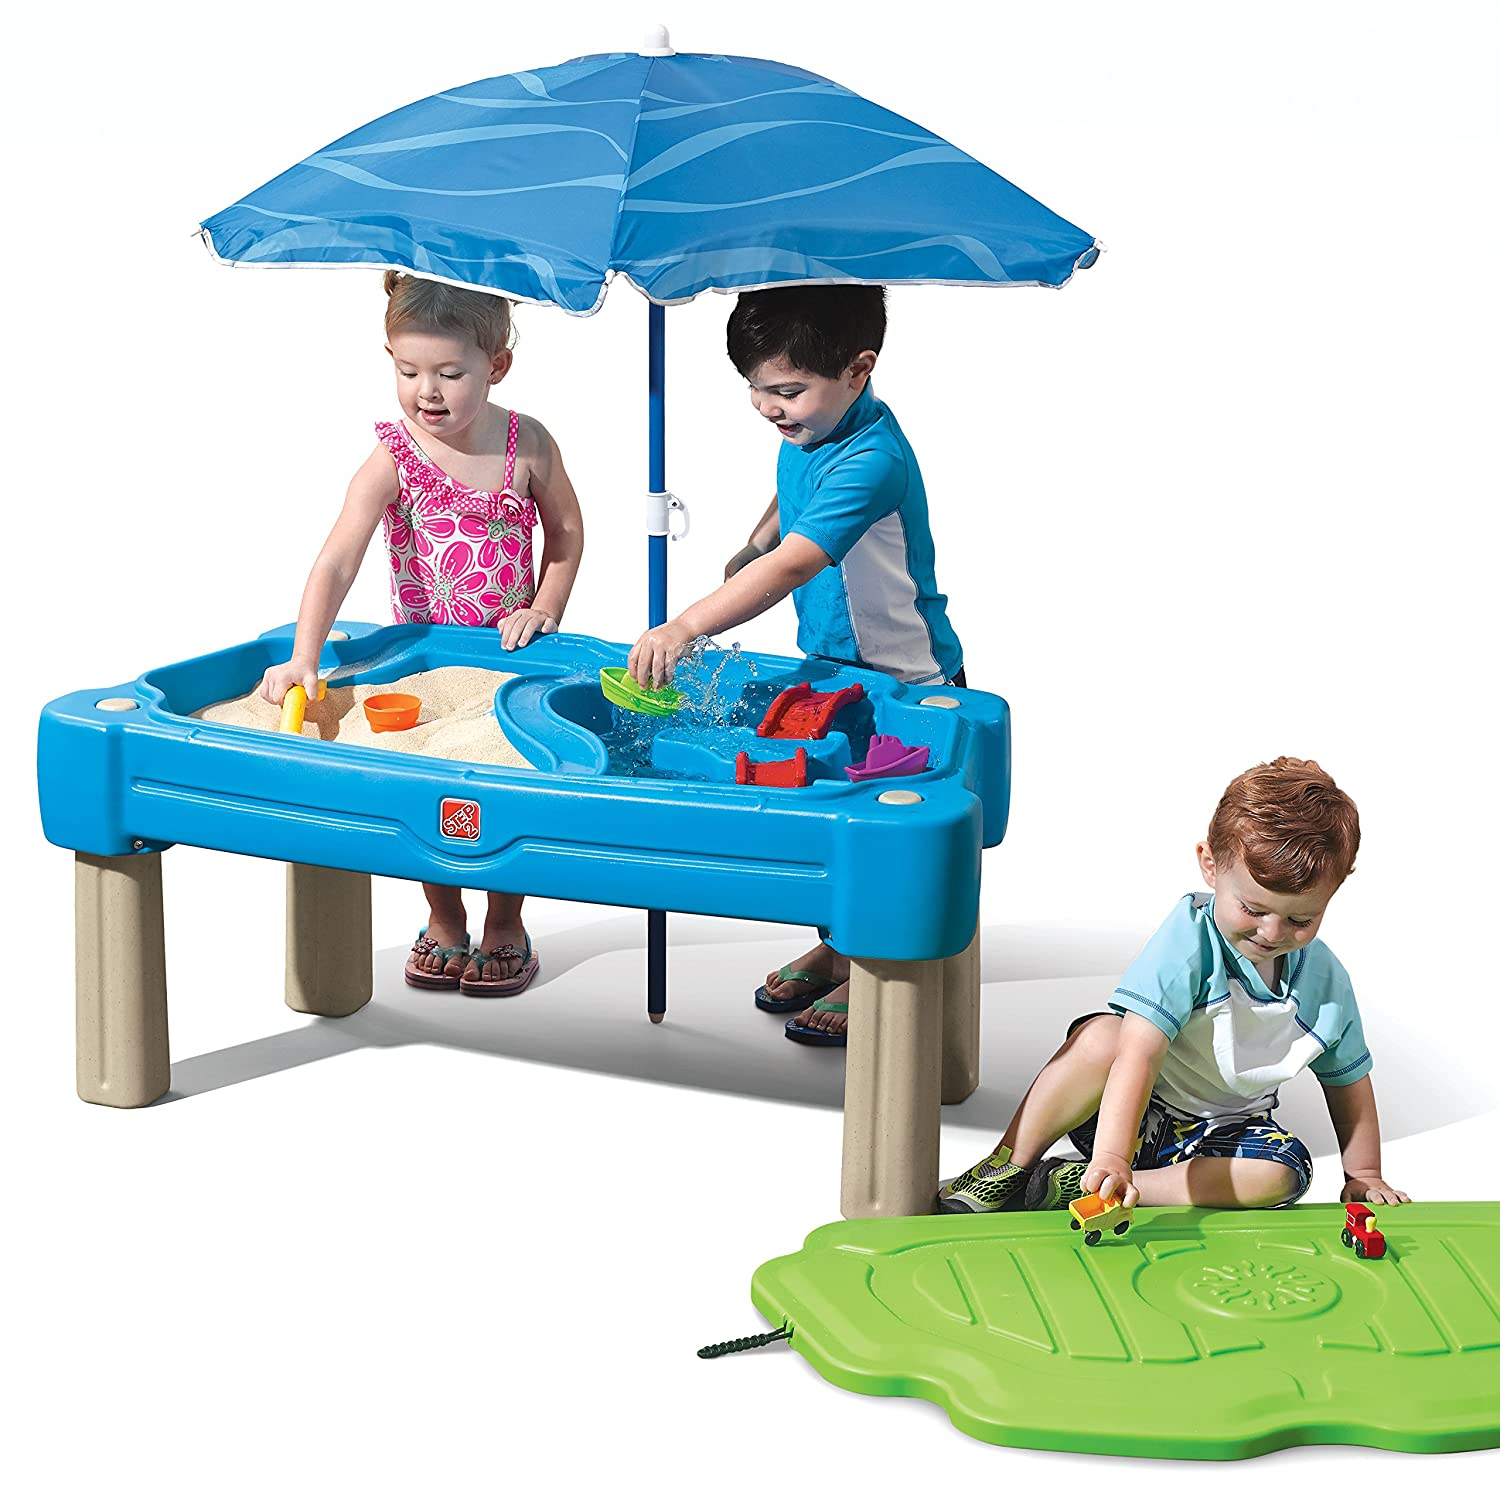 Top 11 Best Water Tables for Kids and Toddlers Reviews in 2021 21